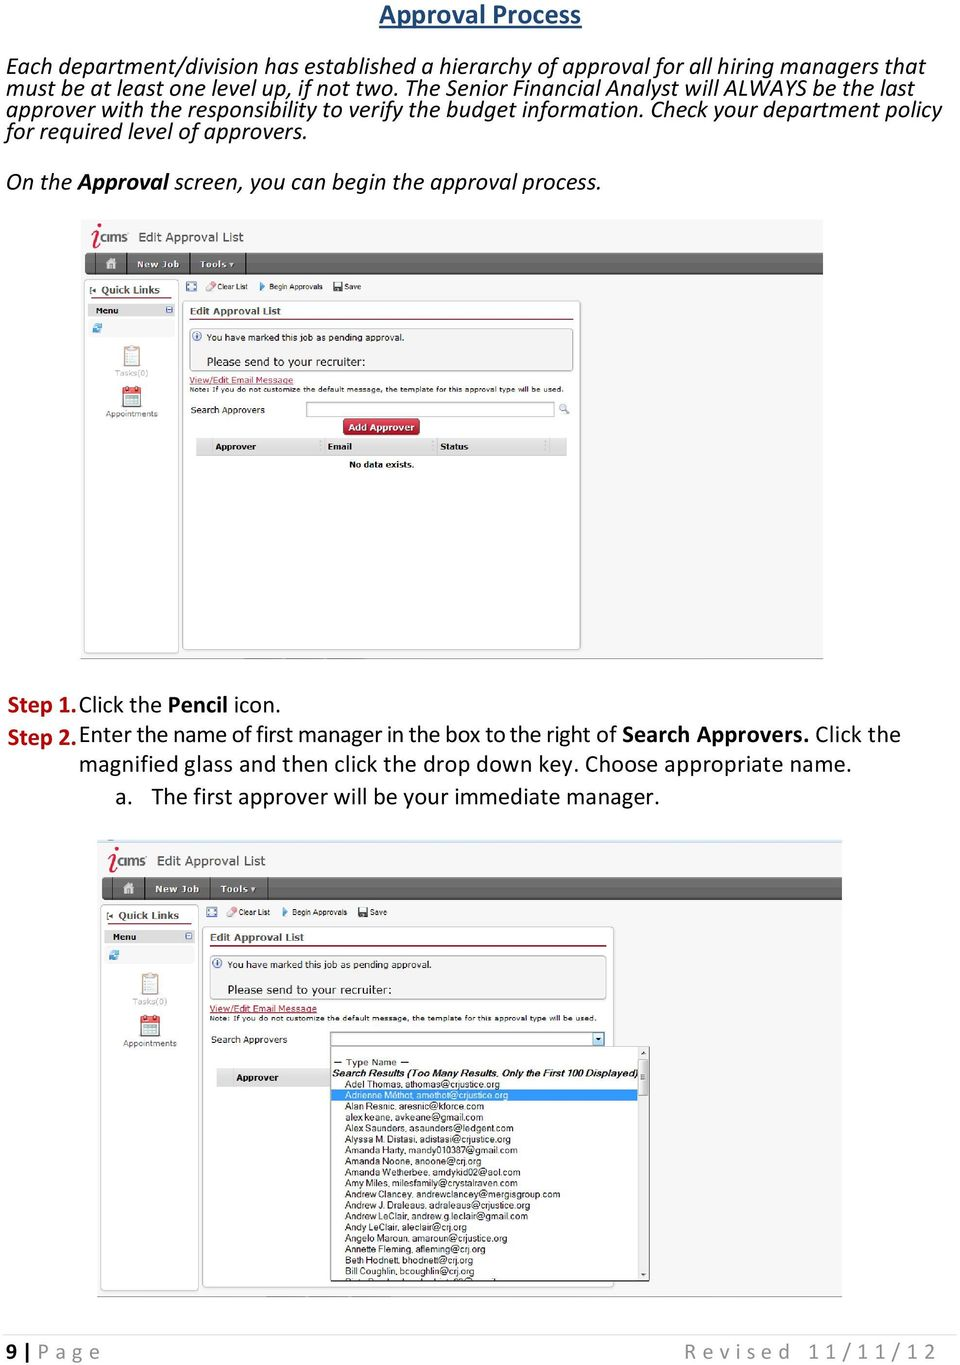 Check your department policy for required level of approvers. On the Approval screen, you can begin the approval process. Step 1. Click the Pencil icon. Step 2.